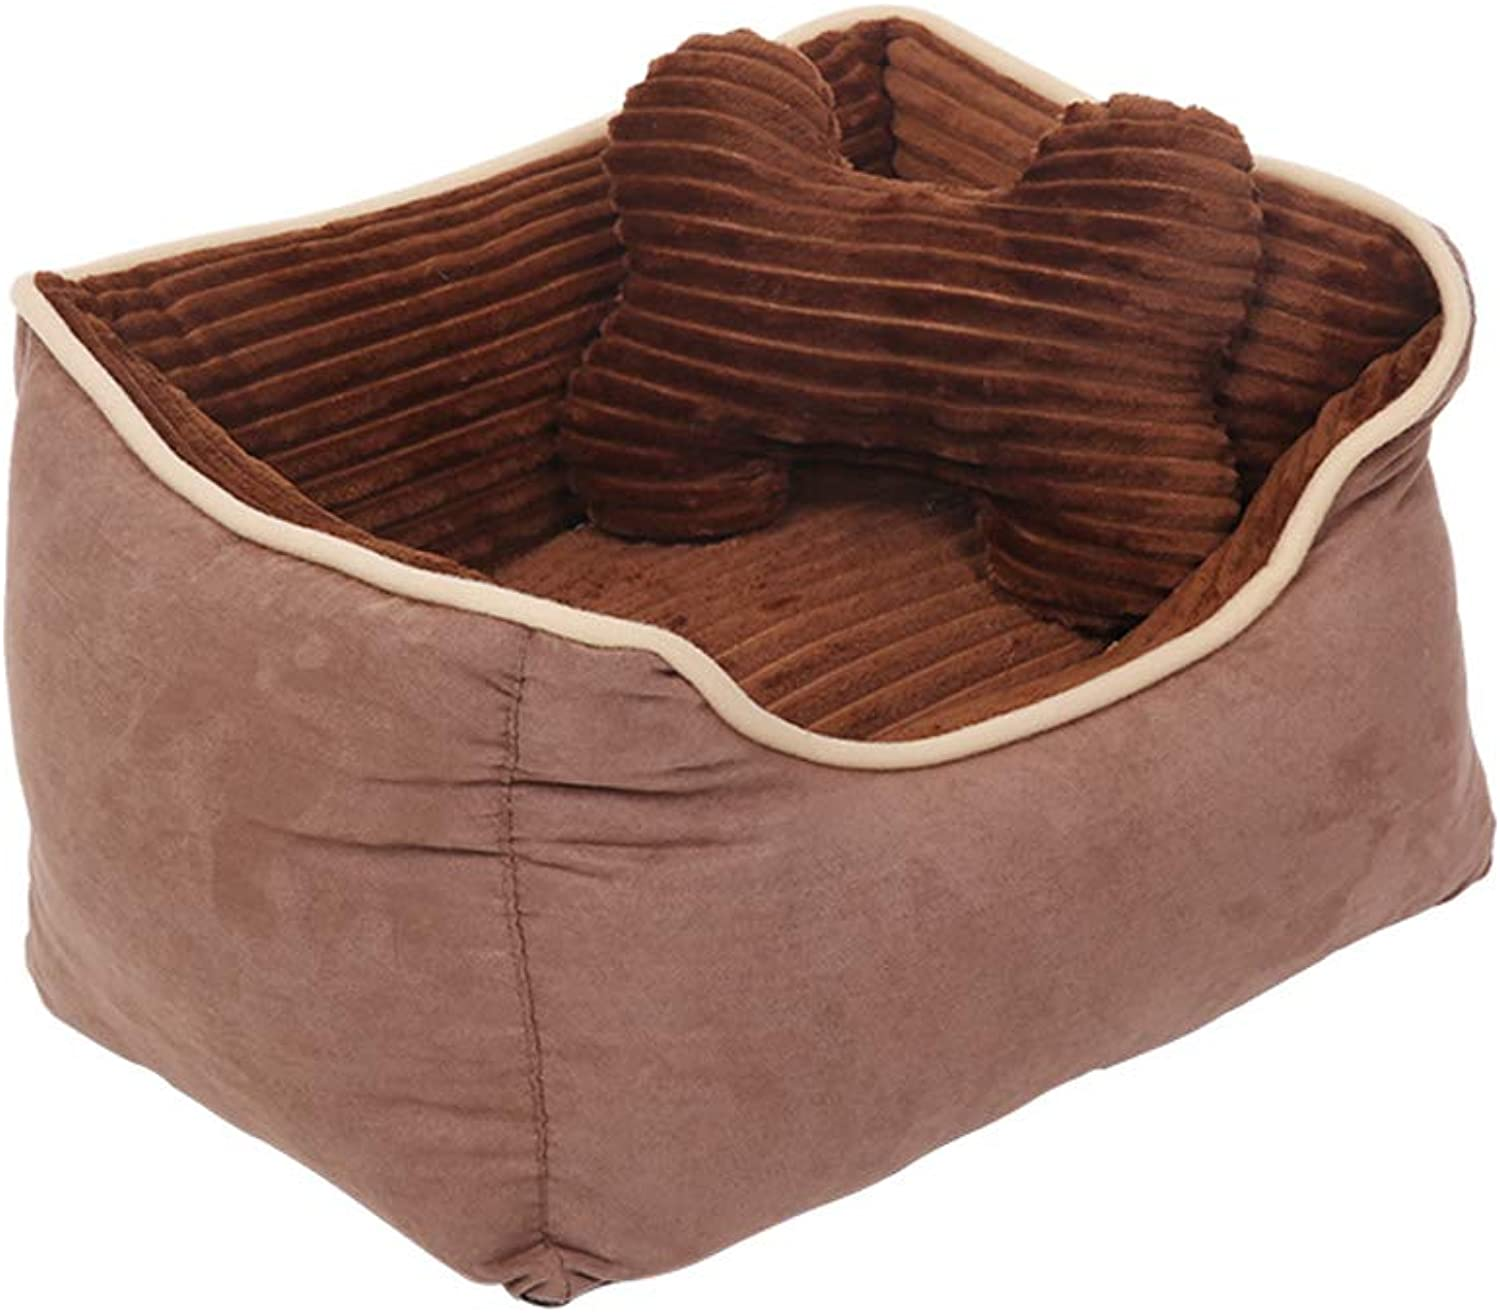 Kennel QIQIDEDIAN Winter Warm Teddy Dog Bed Large And Mediumsized Dogs Pet Supplies Supplies Removable Winter Mats (Size   S 22  35  45cm)